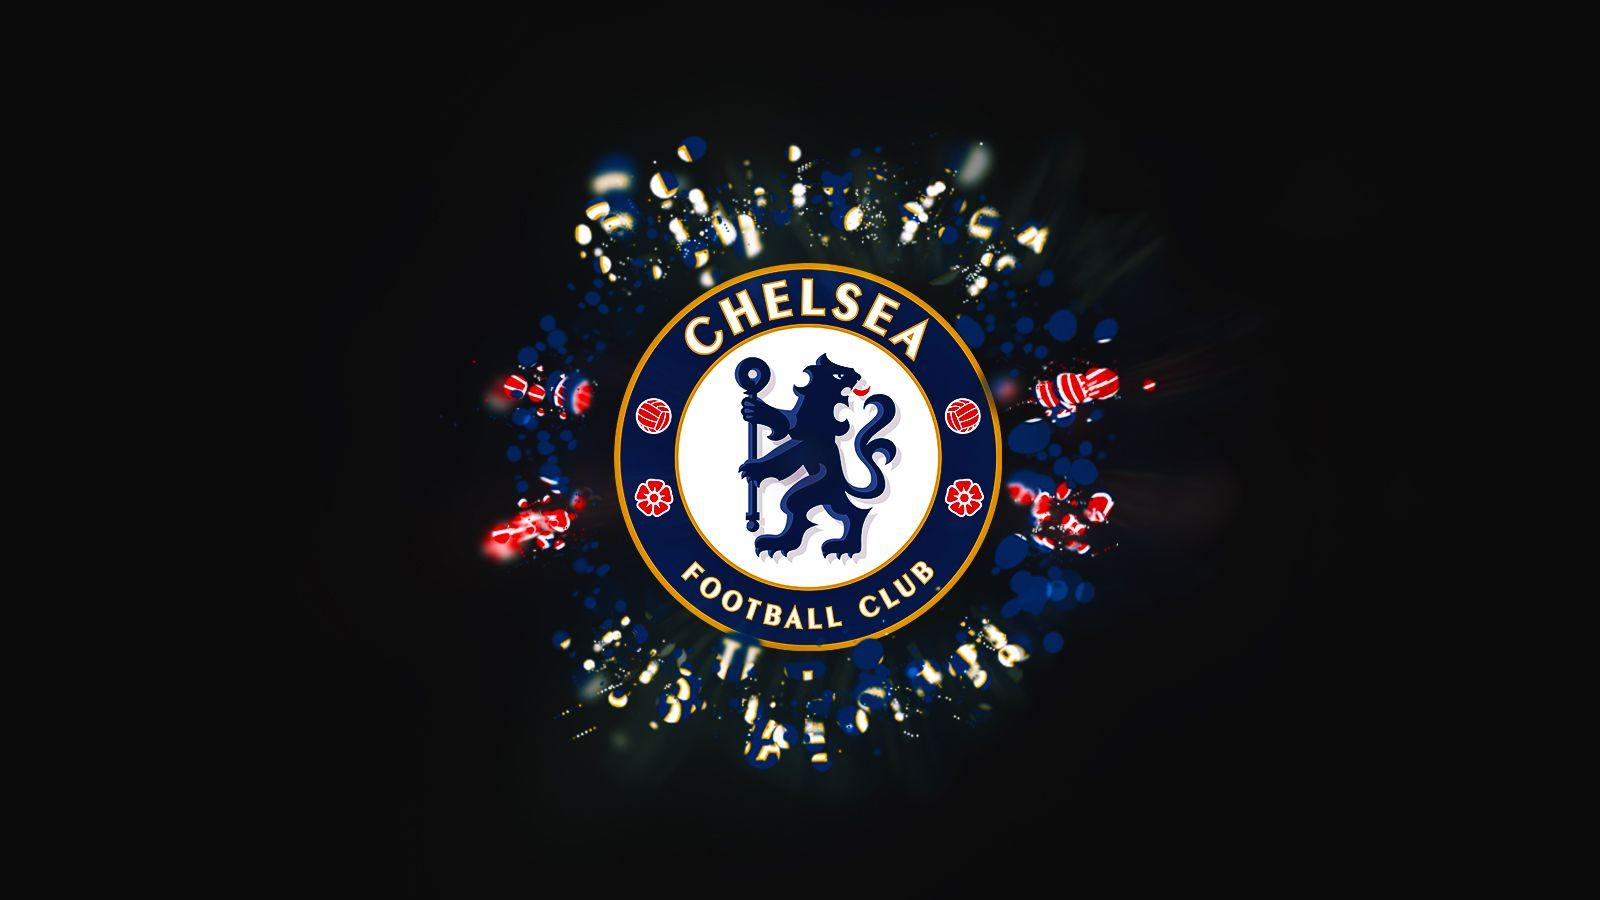 Chelsea Fc Black Wallpaper